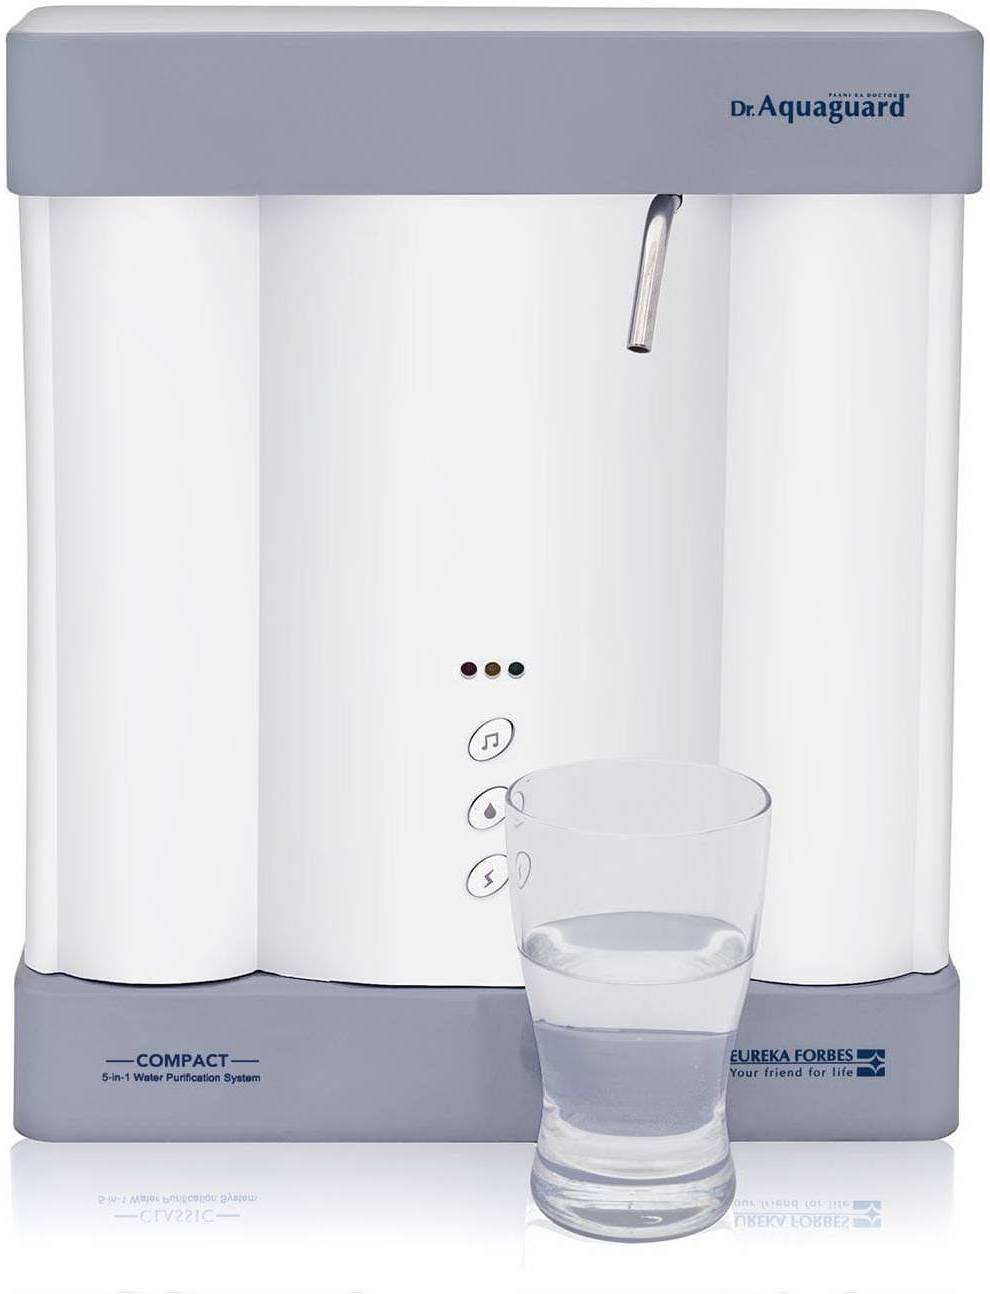 Eureka Forbes Compact 1 L UV Water Purifier Image